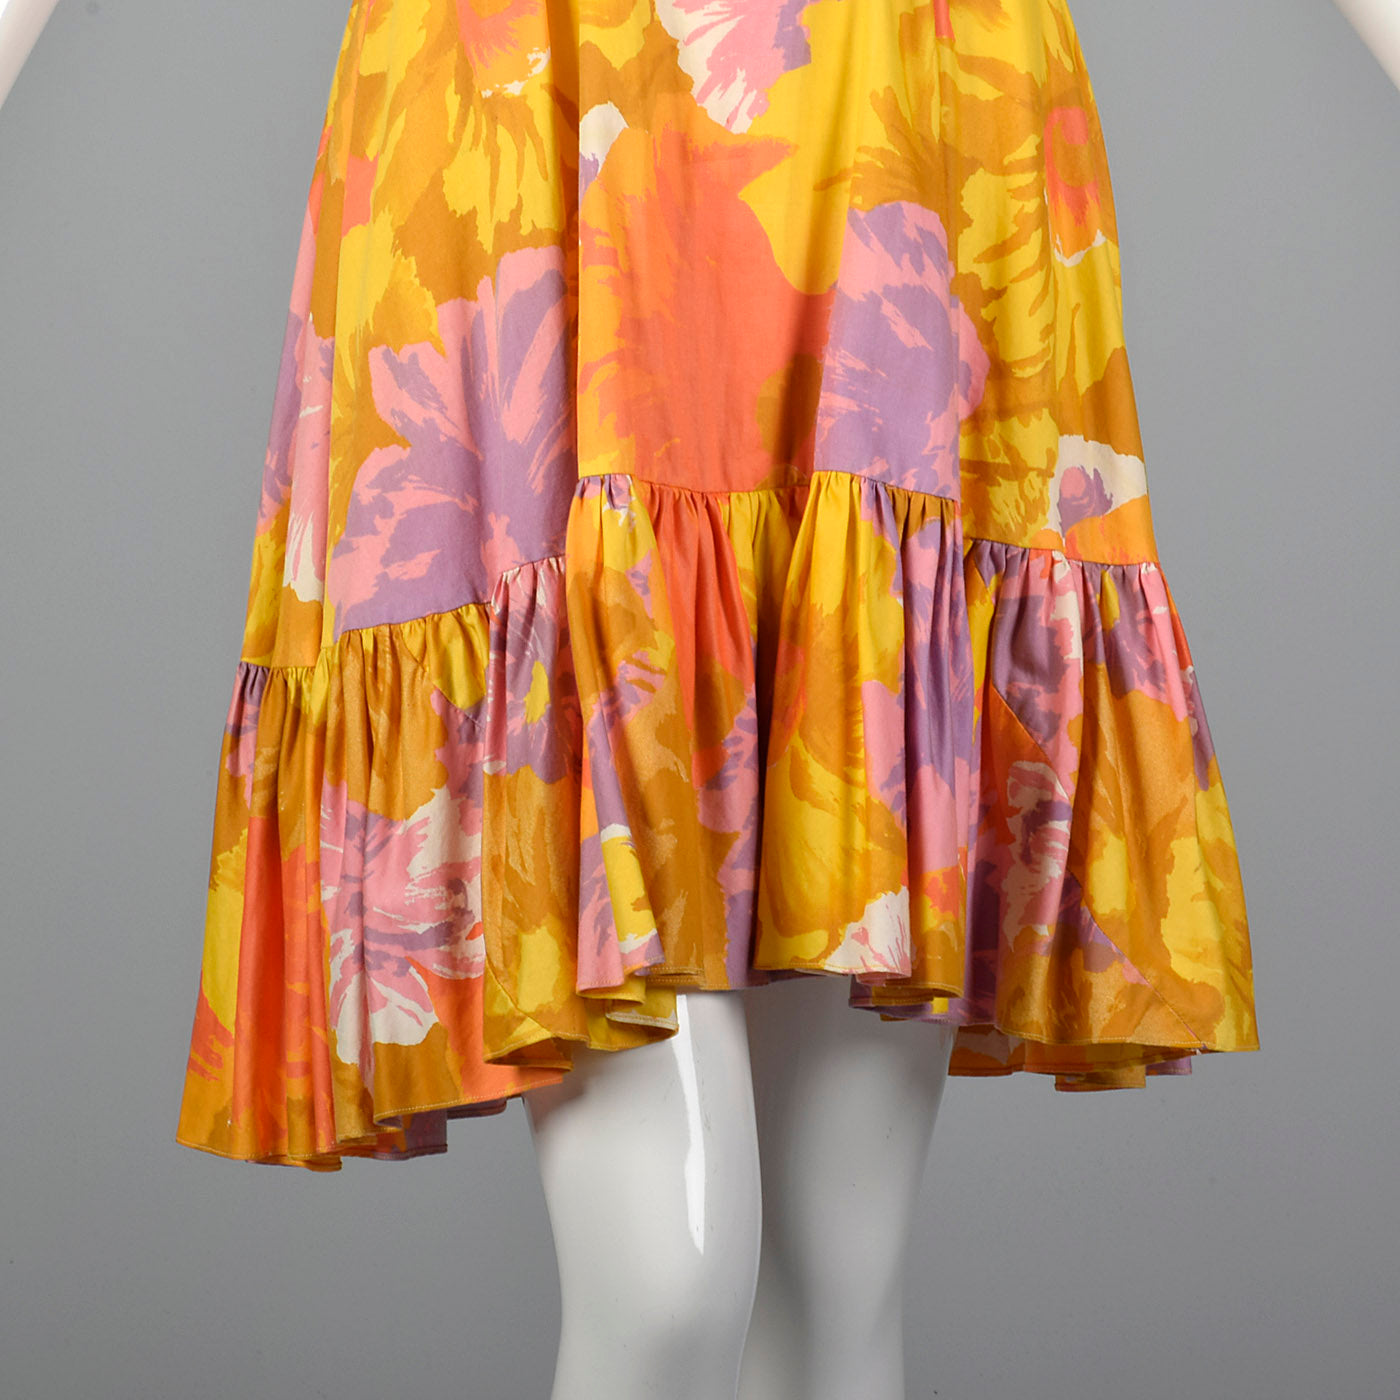 1960 Lilli Diamond Abstract Floral Print Dress